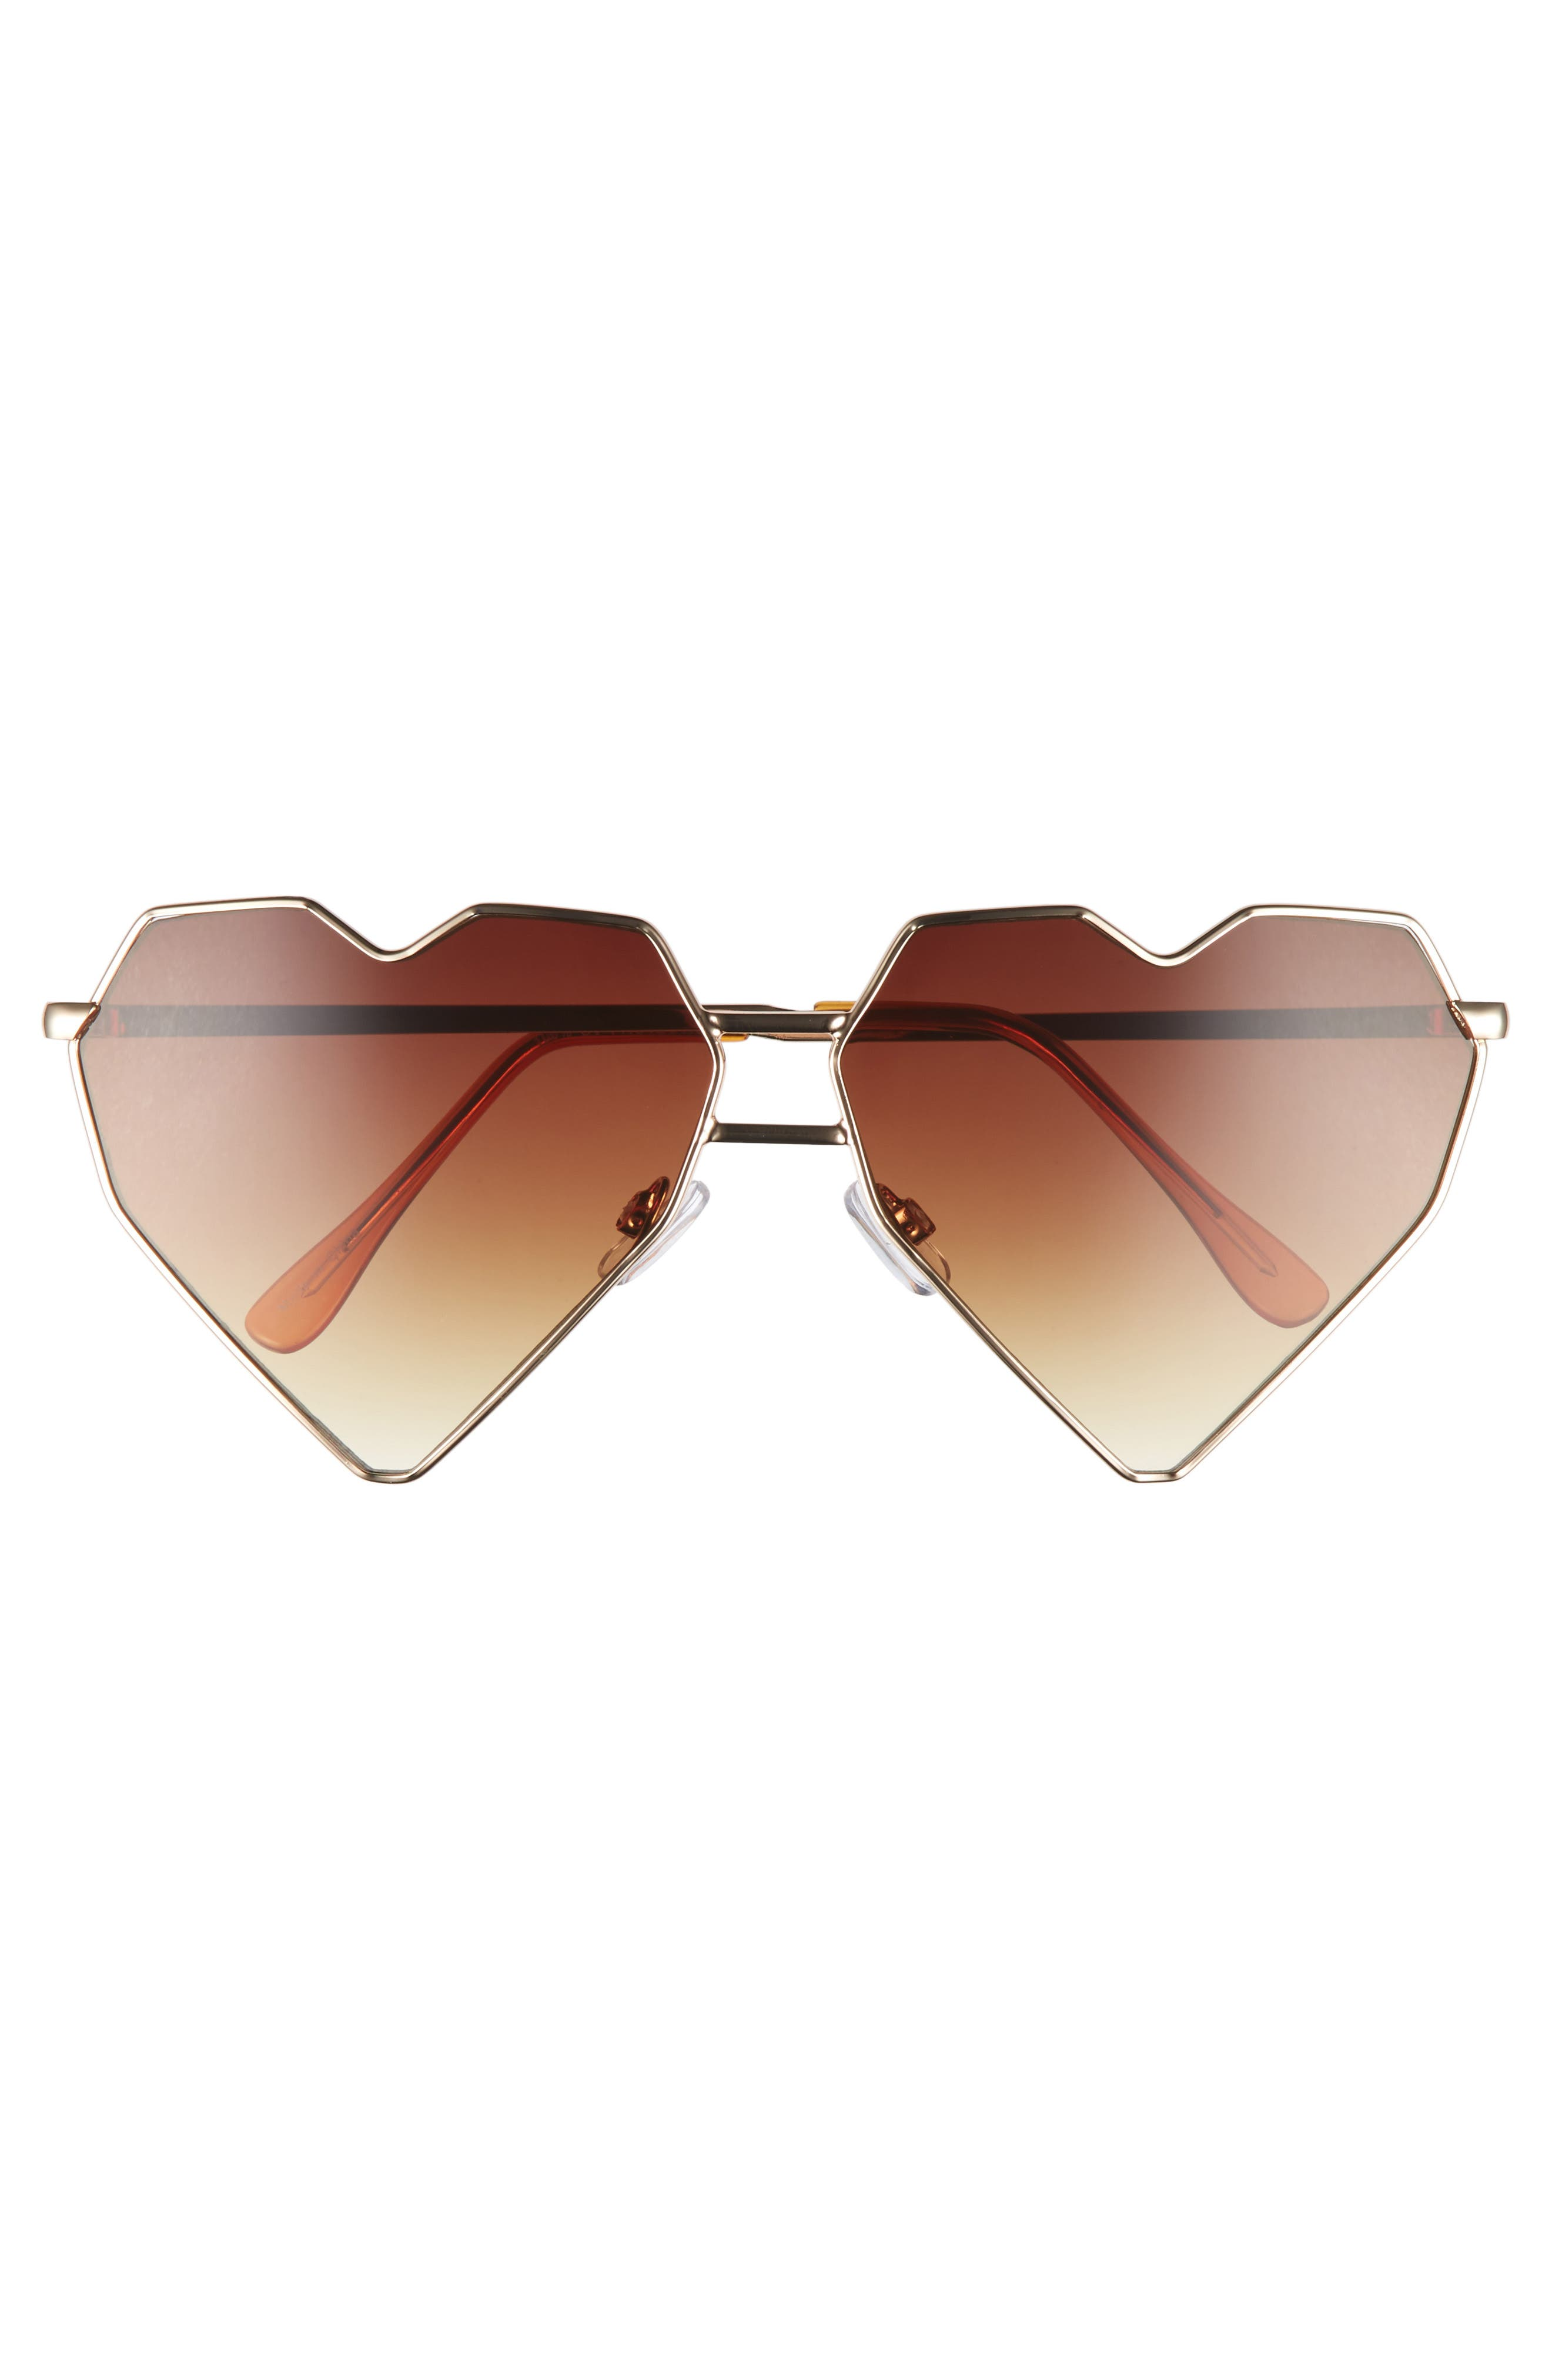 64mm Heart Shaped Sunglasses,                             Alternate thumbnail 3, color,                             Gold